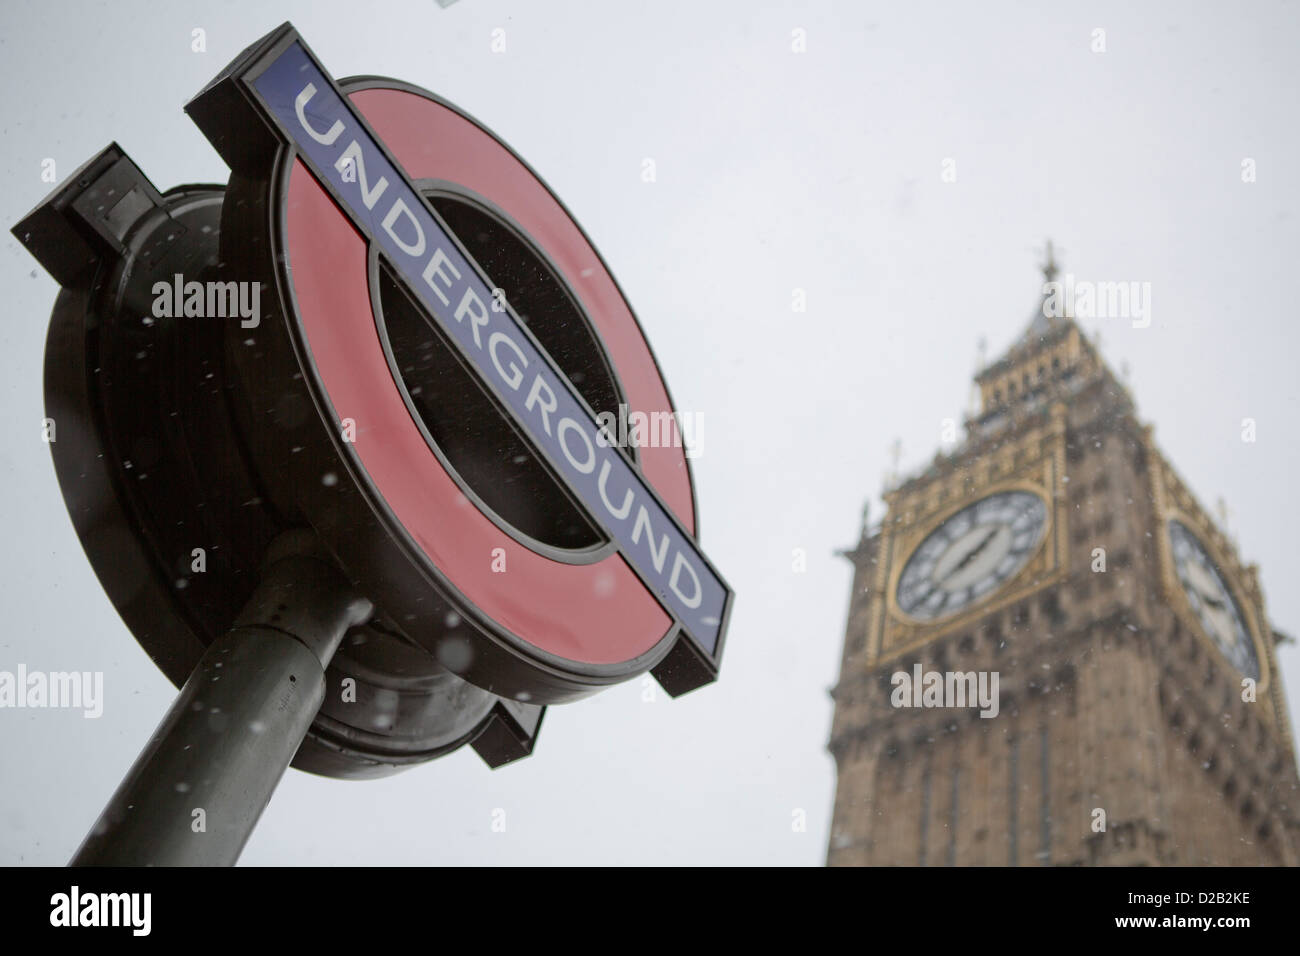 Snowing in London. - Stock Image